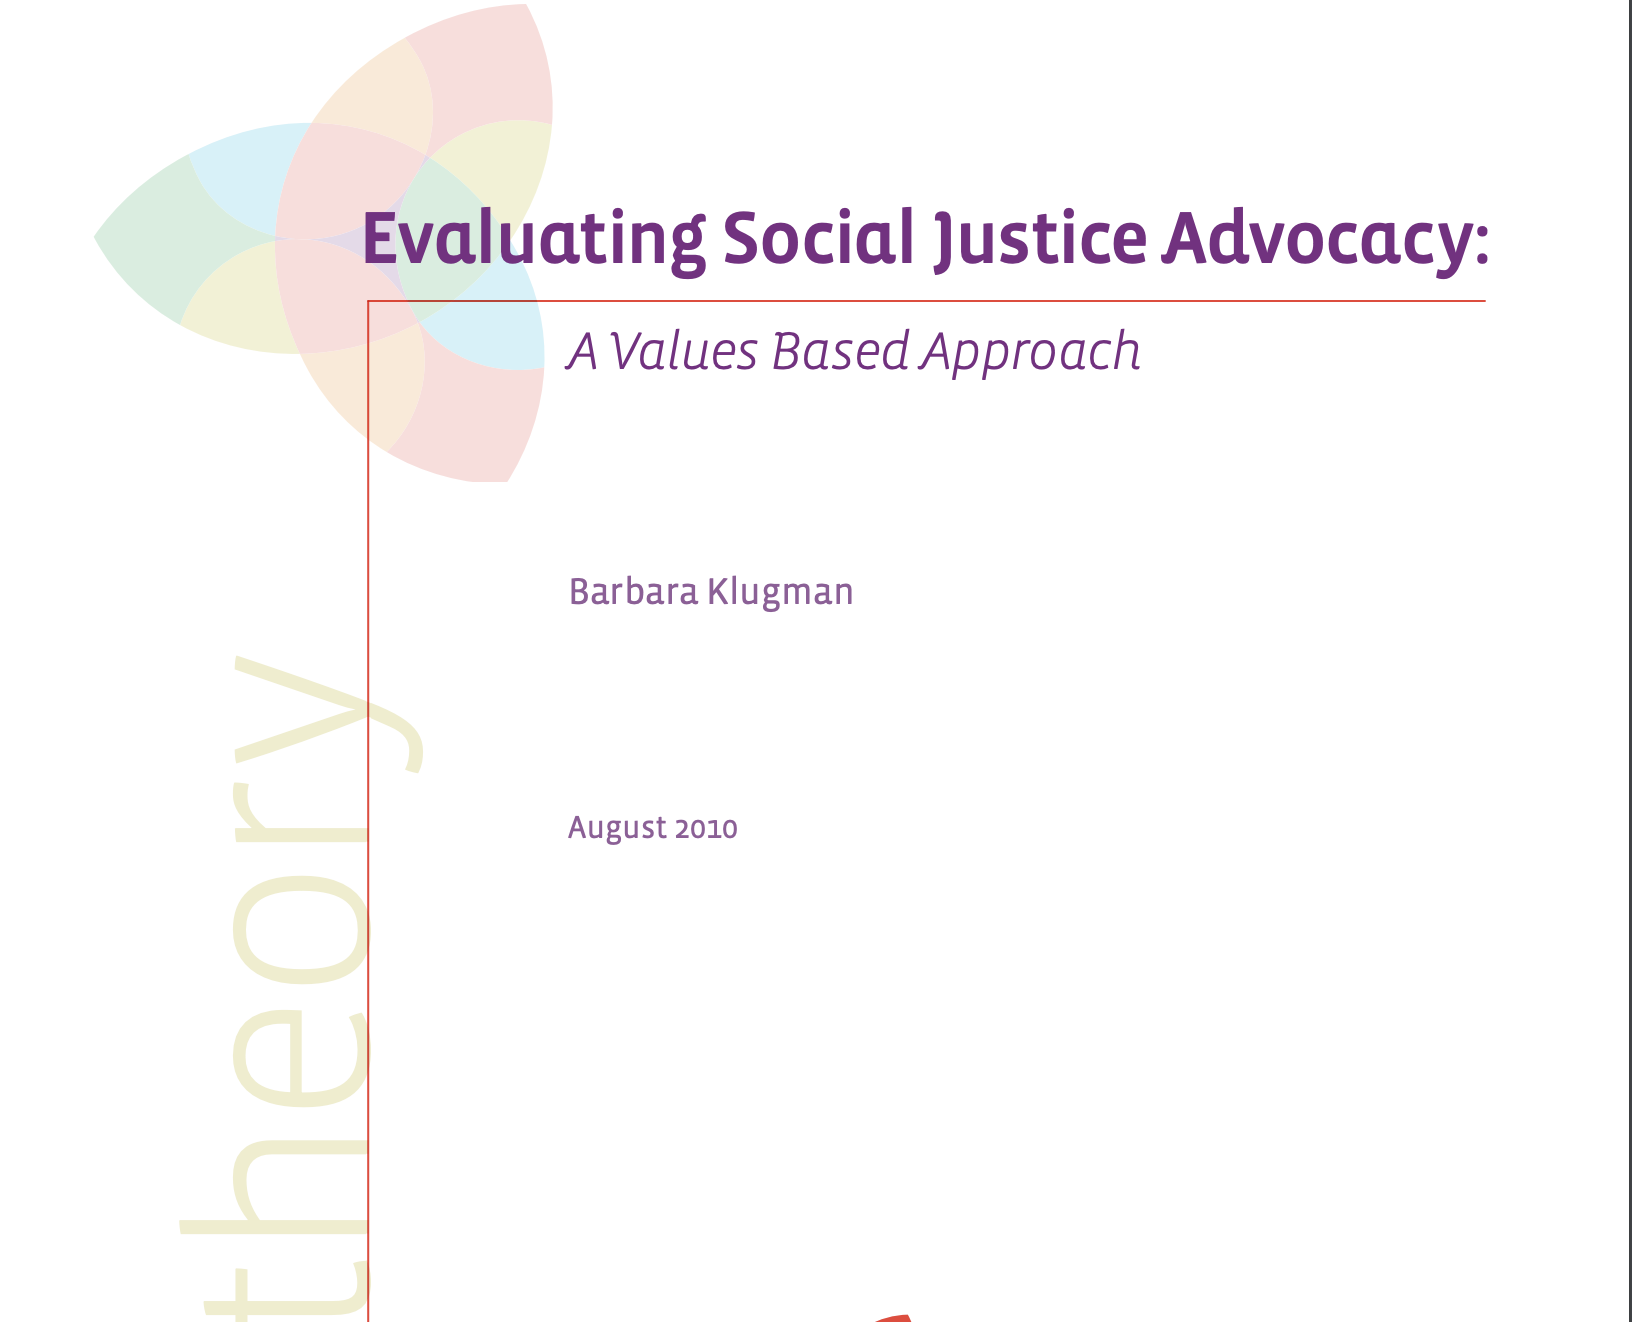 Evaluating Social Justice Advocacy: A Values Based Approach